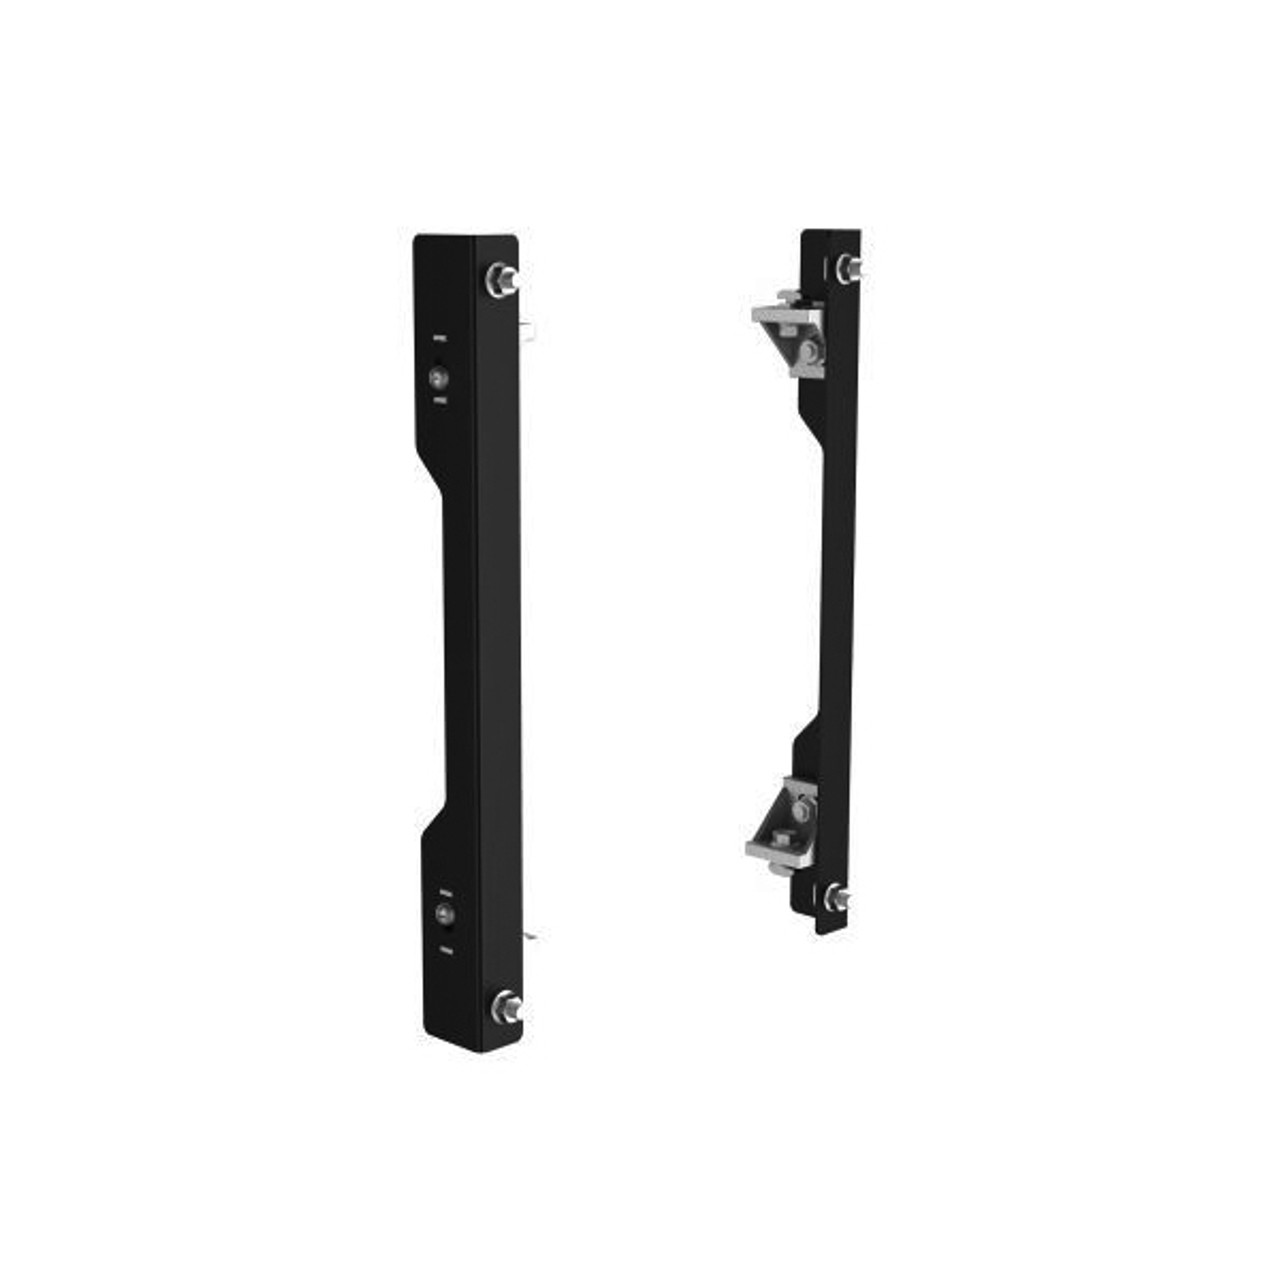 Image for 4Cabling Video Wall Mount EDGE CX Computer Superstore